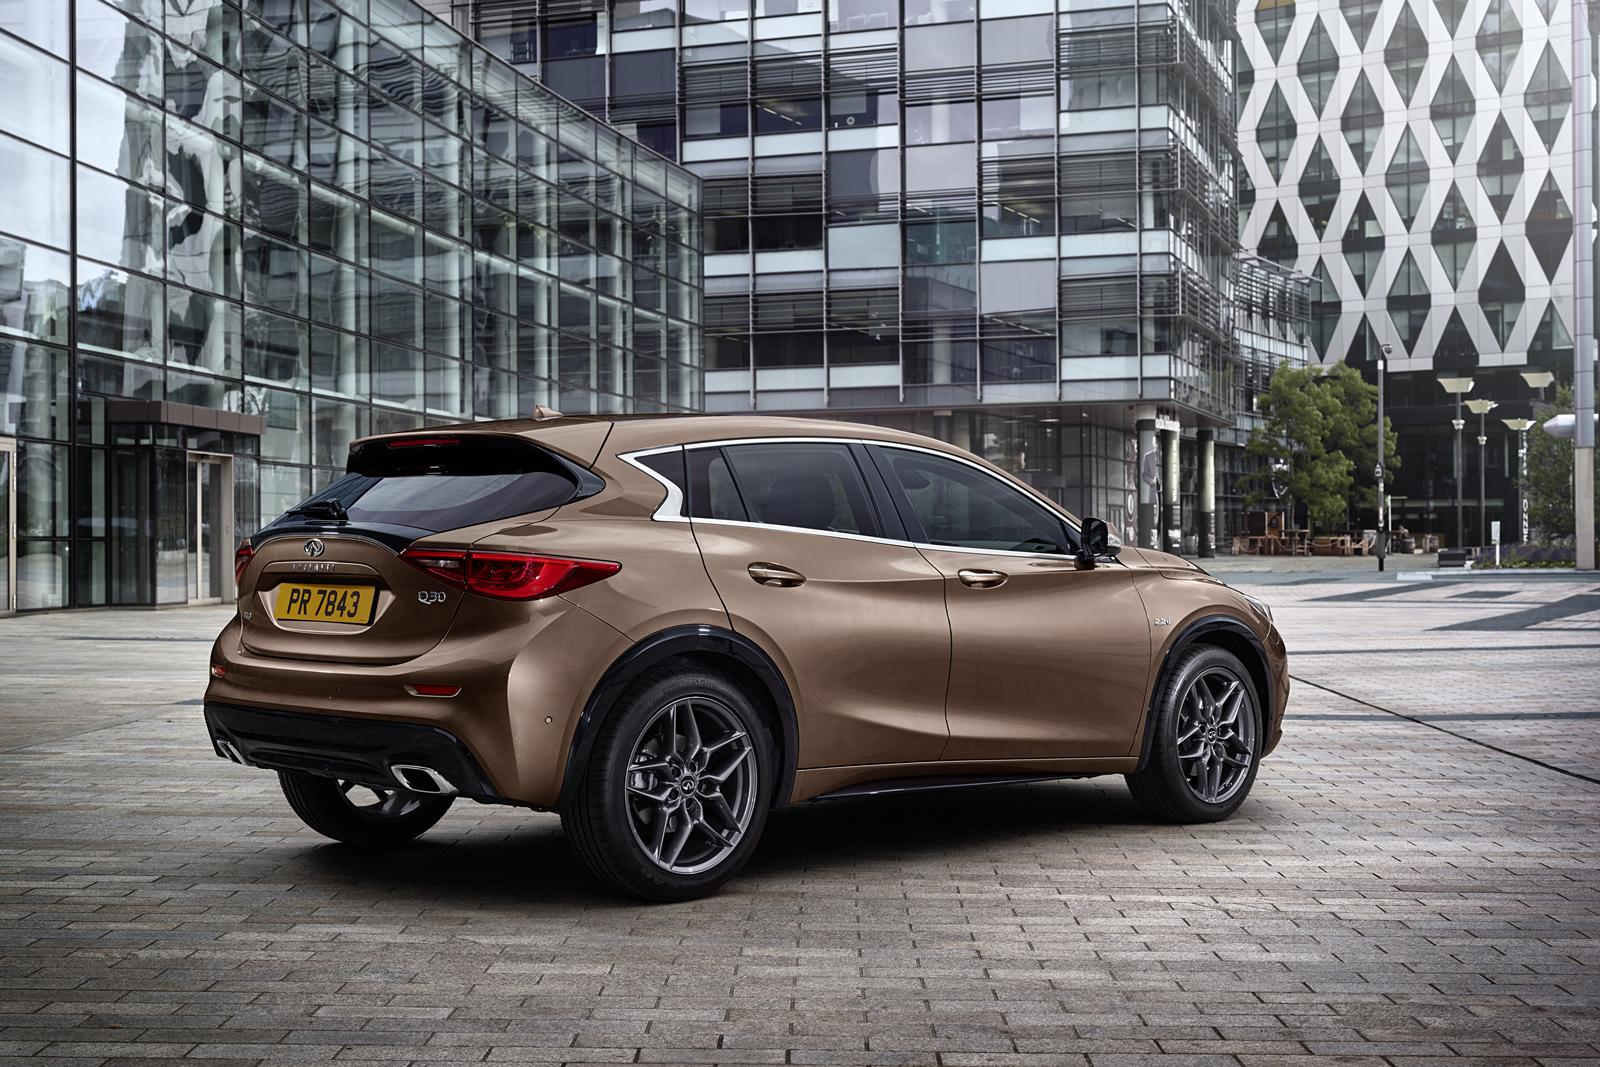 infiniti q30 premium hatchback specs revealed four turbo. Black Bedroom Furniture Sets. Home Design Ideas